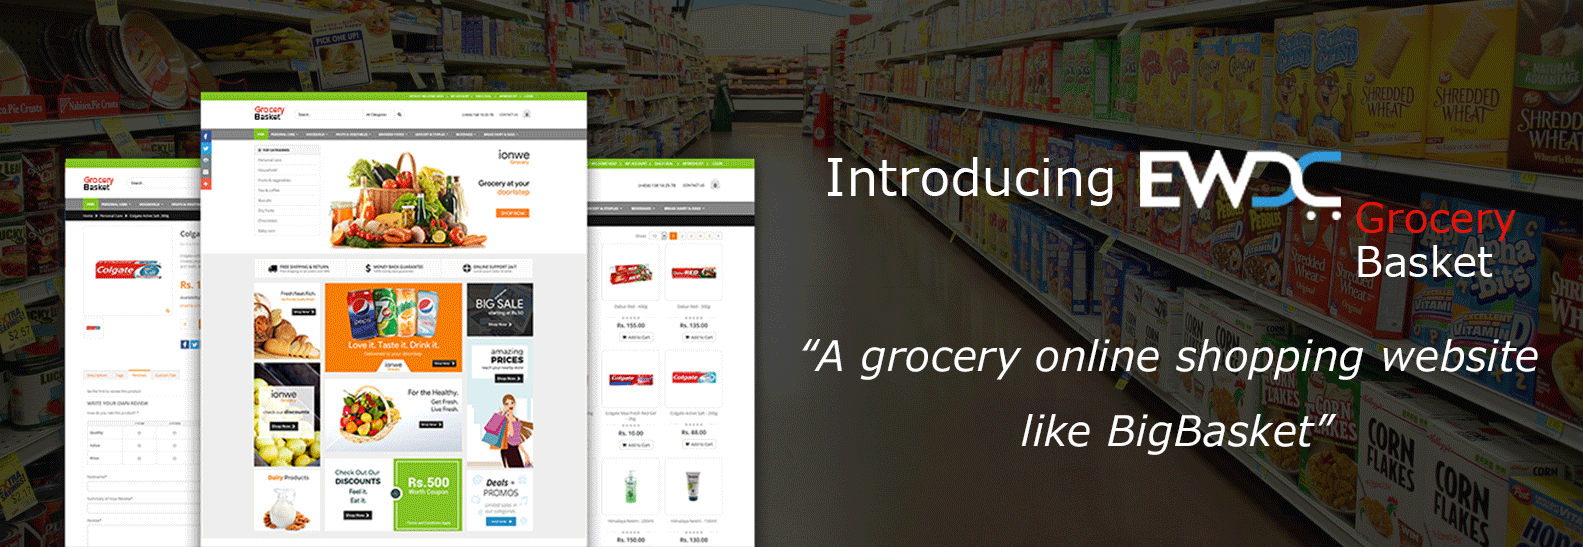 grocery online shopping website like BigBasket